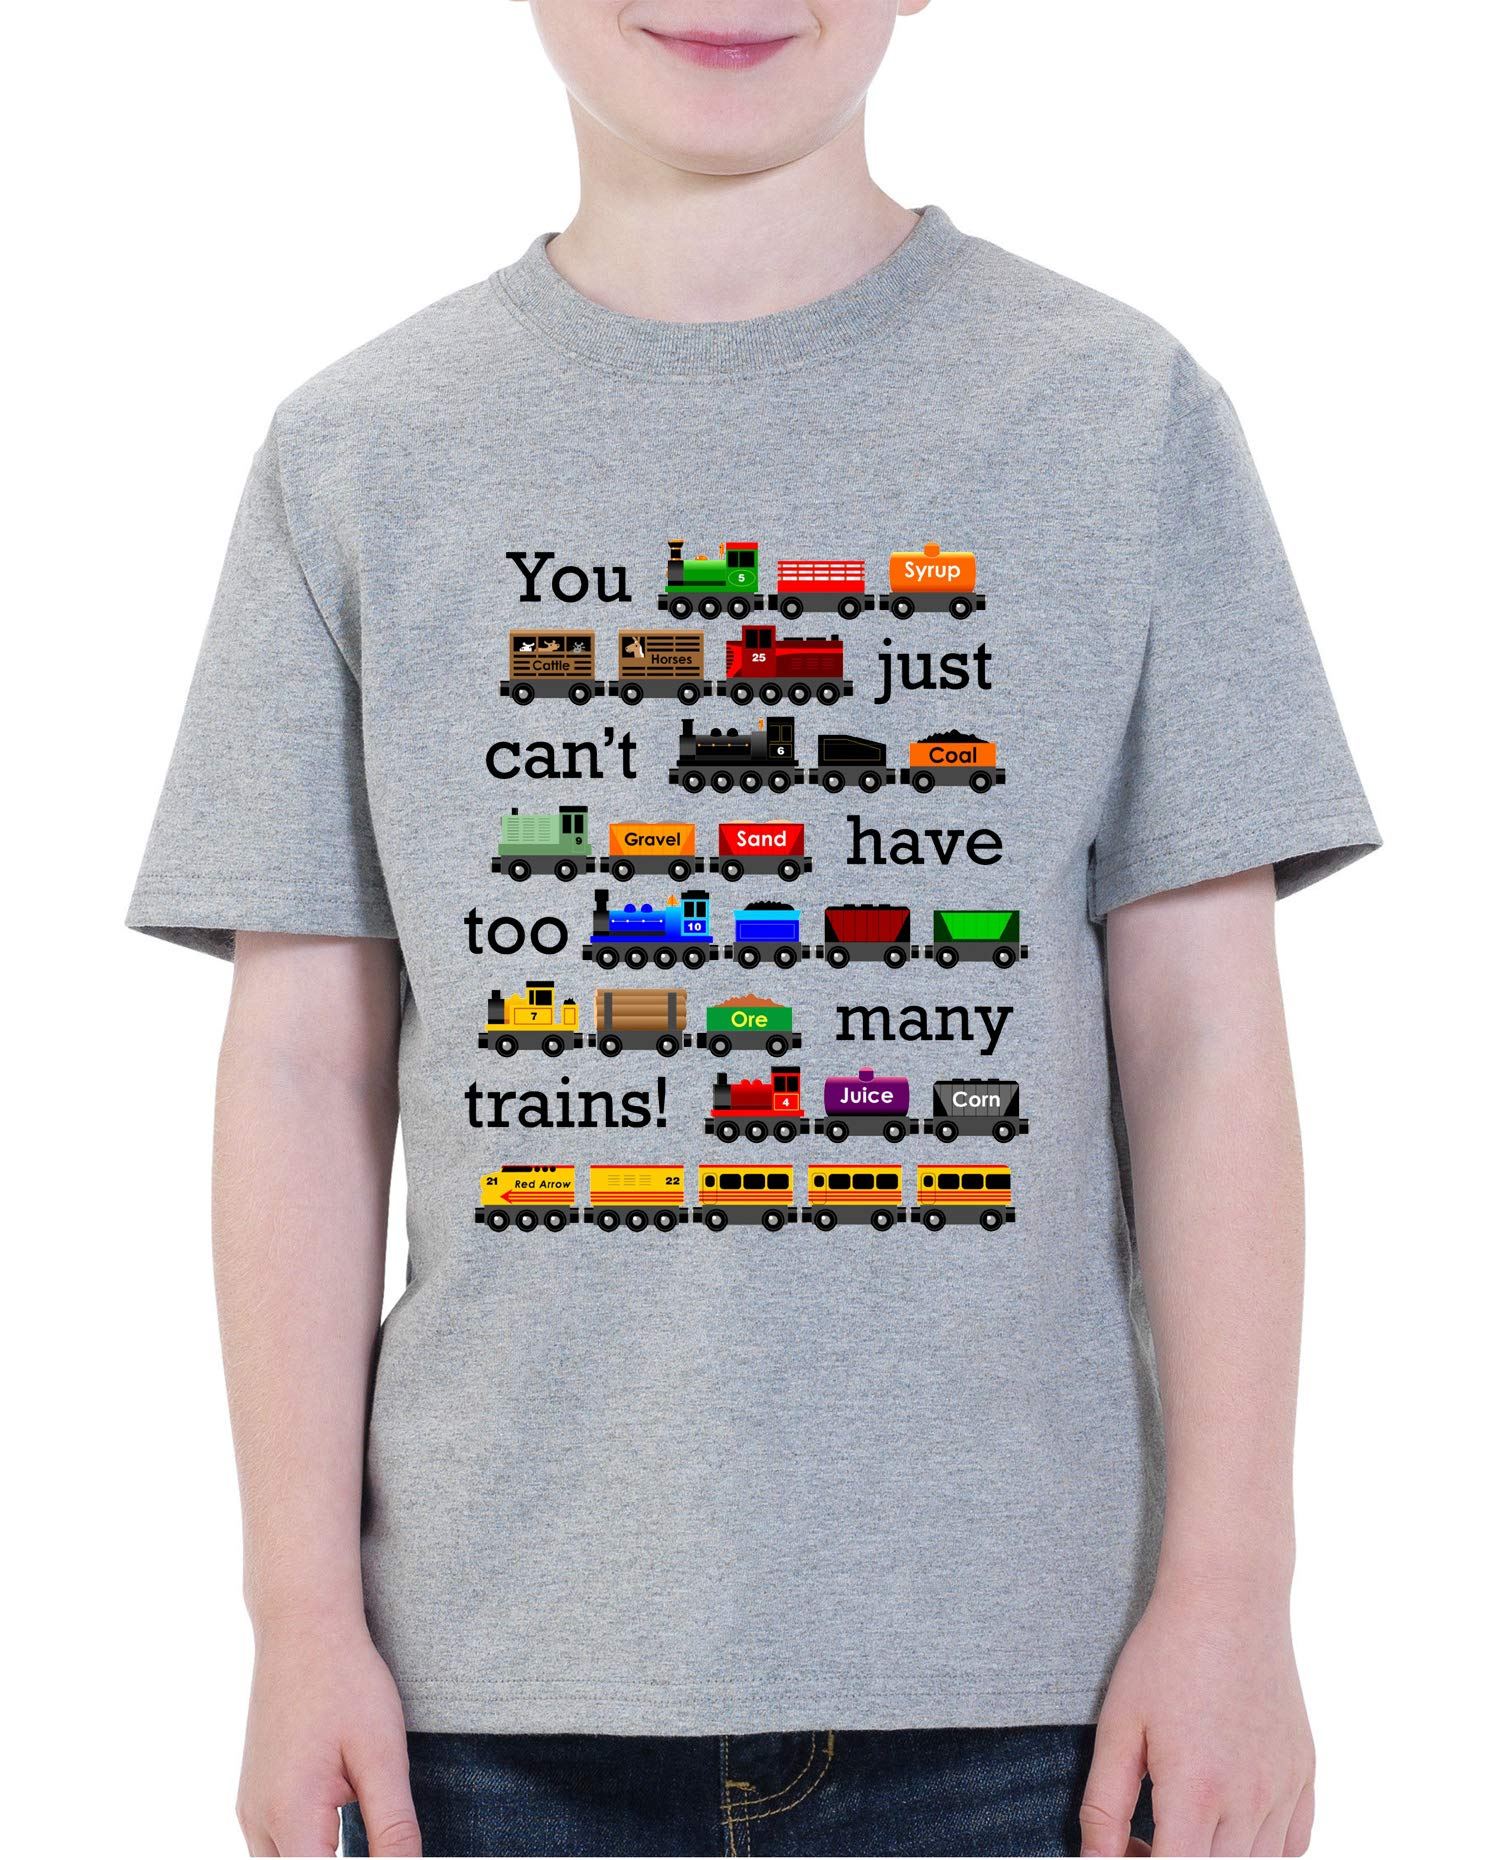 Waldeal Boys Girls Too Many Trains Short Sleeve T Shirt Funny Youth Train Truck Tee 5T 6t by Waldeal